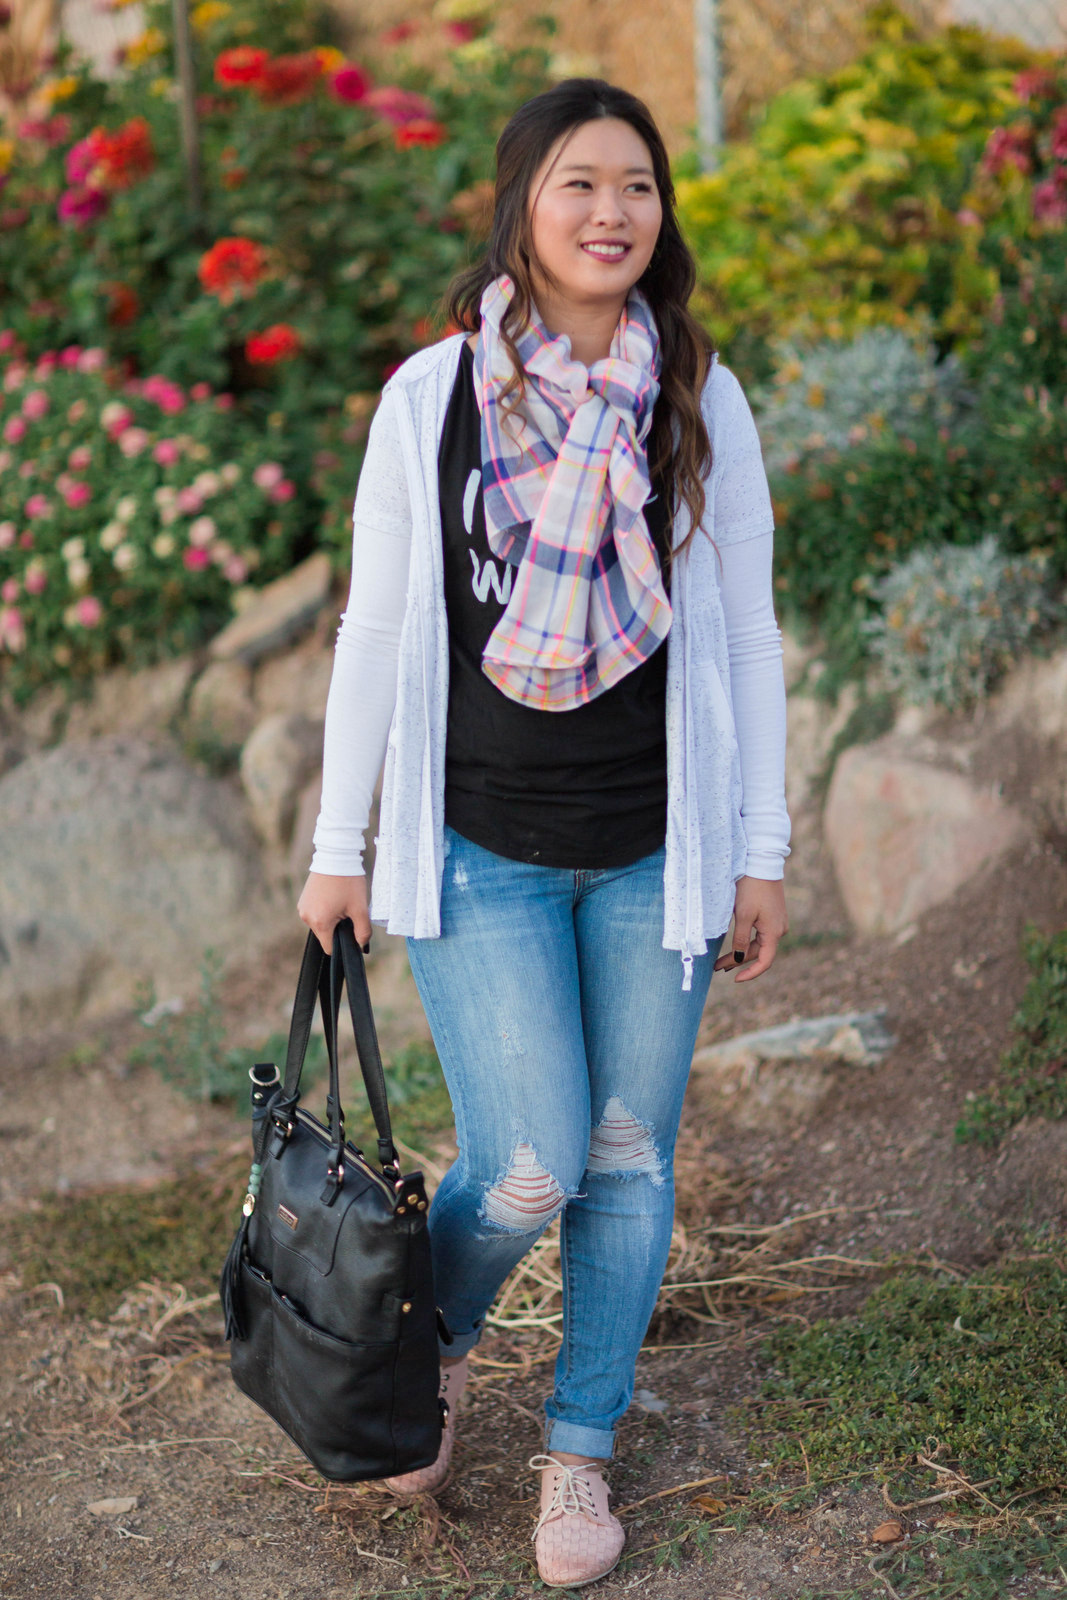 7 Of The Best Summer To Fall Fashion Outfits You Can Recreate by Utah fashion blogger Sandy A La Mode